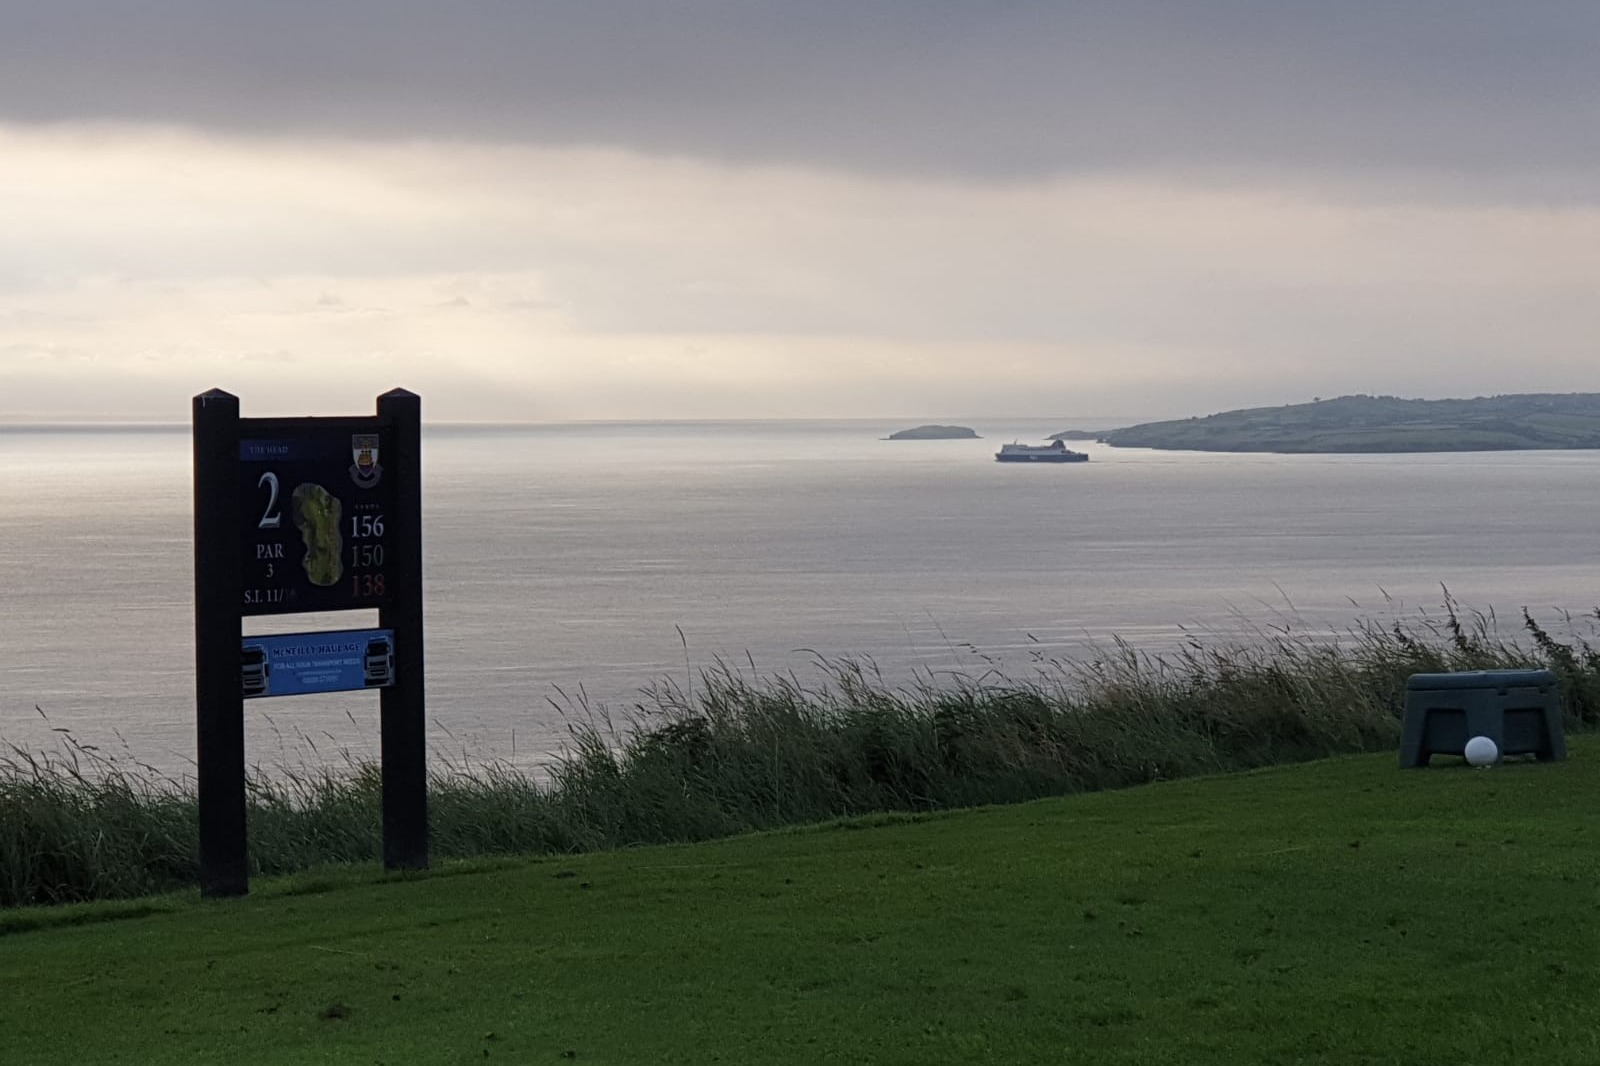 P&O Ferry heading to Scotland from the 2nd tee